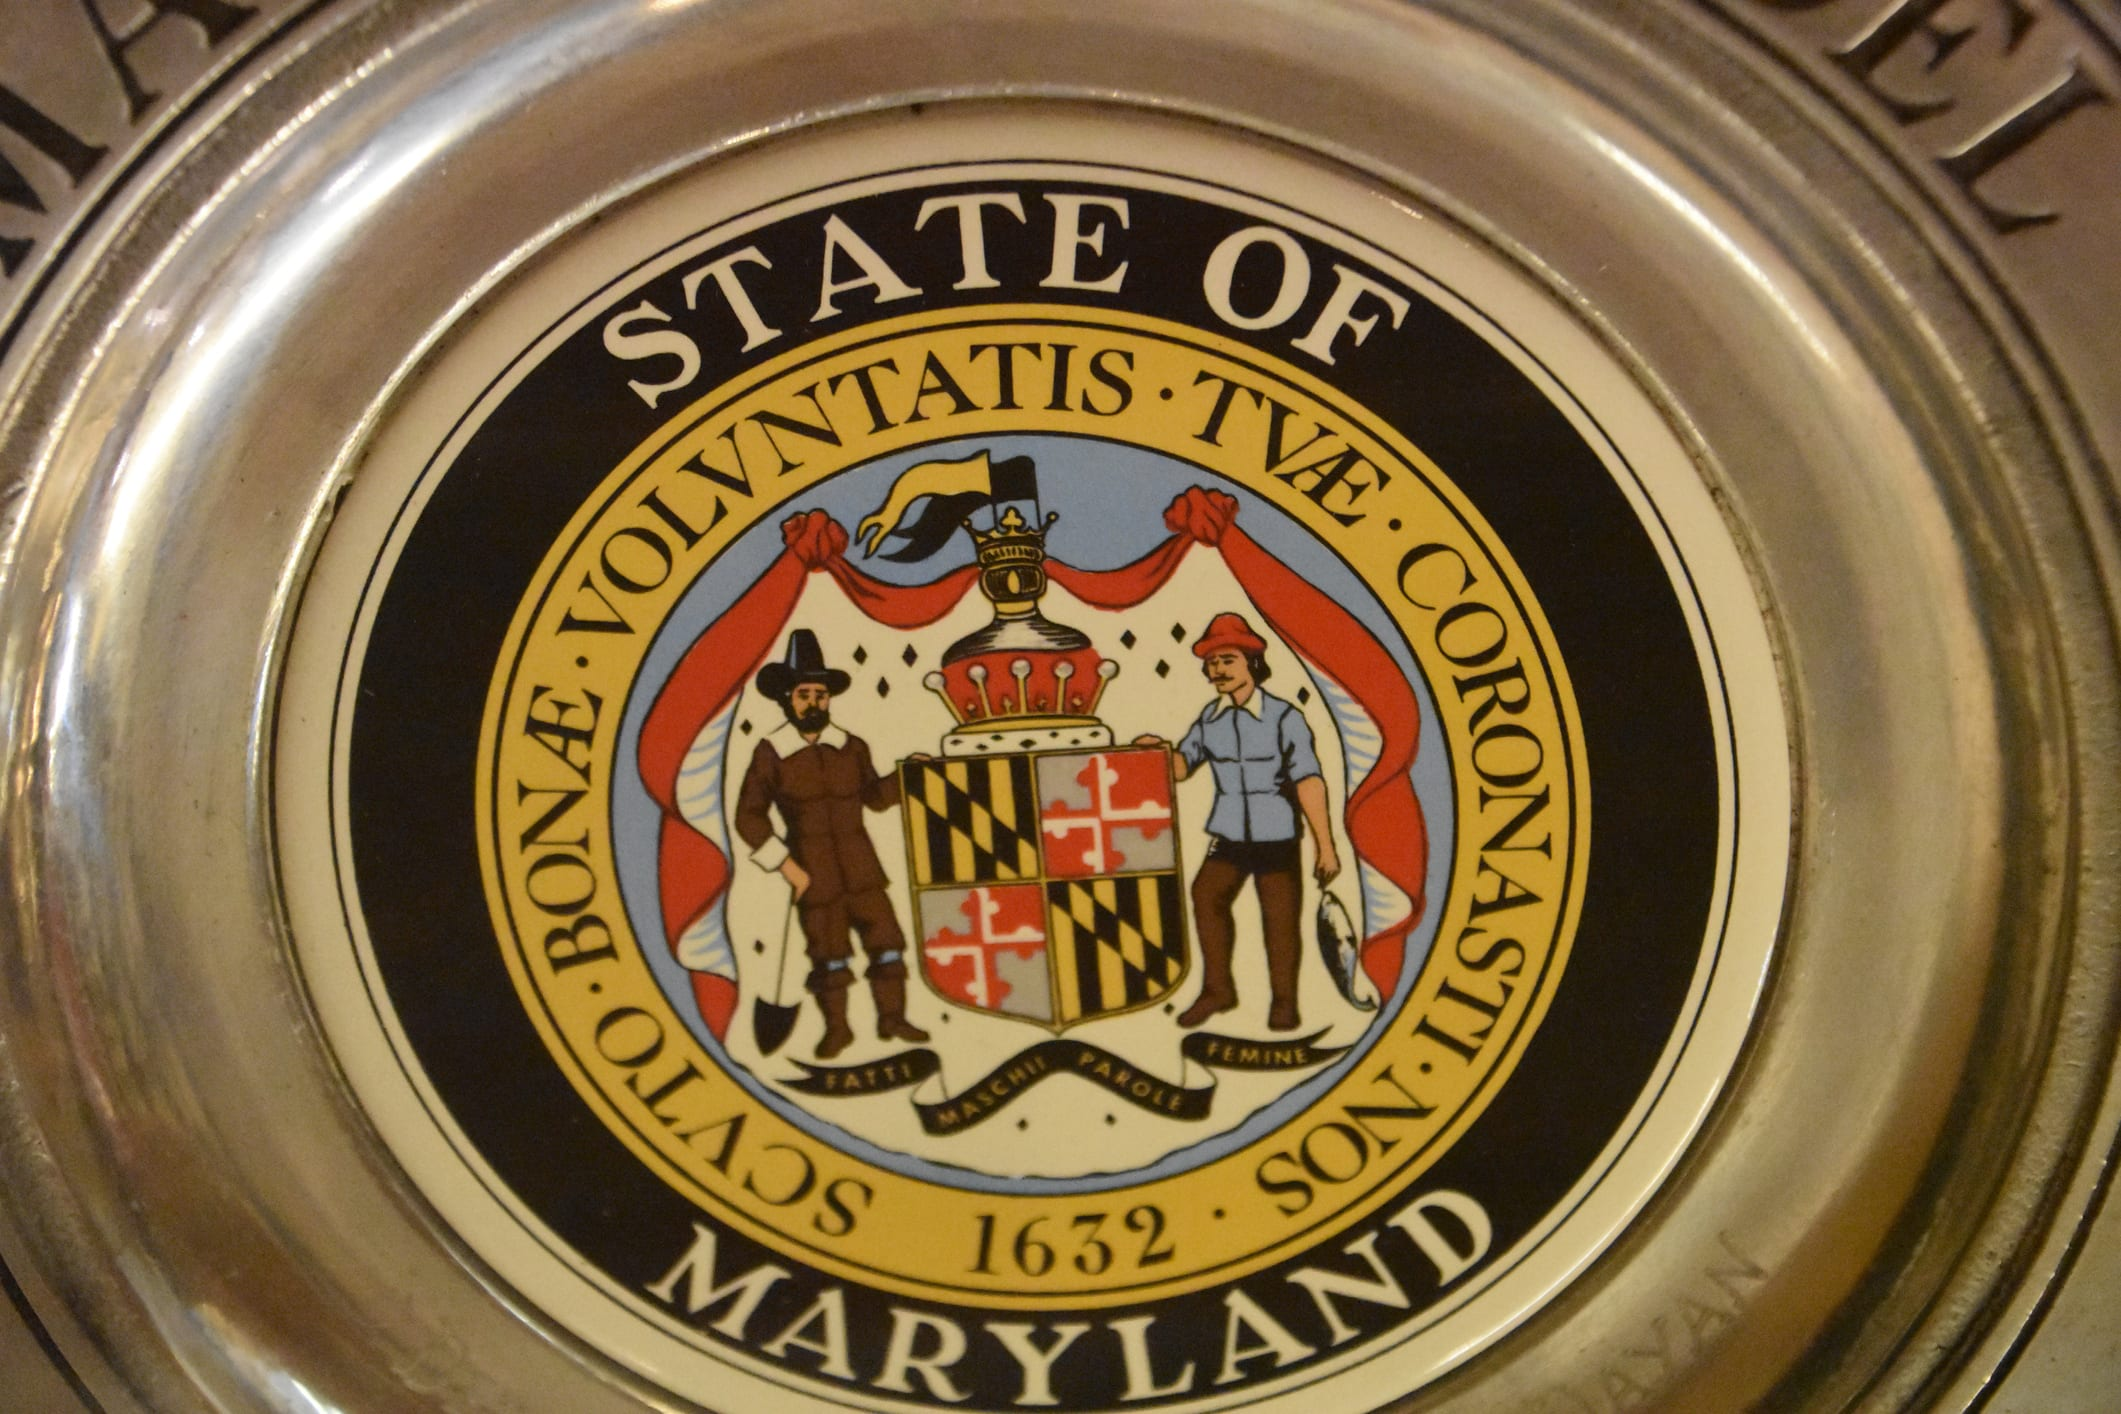 Golden Plate of Maryland